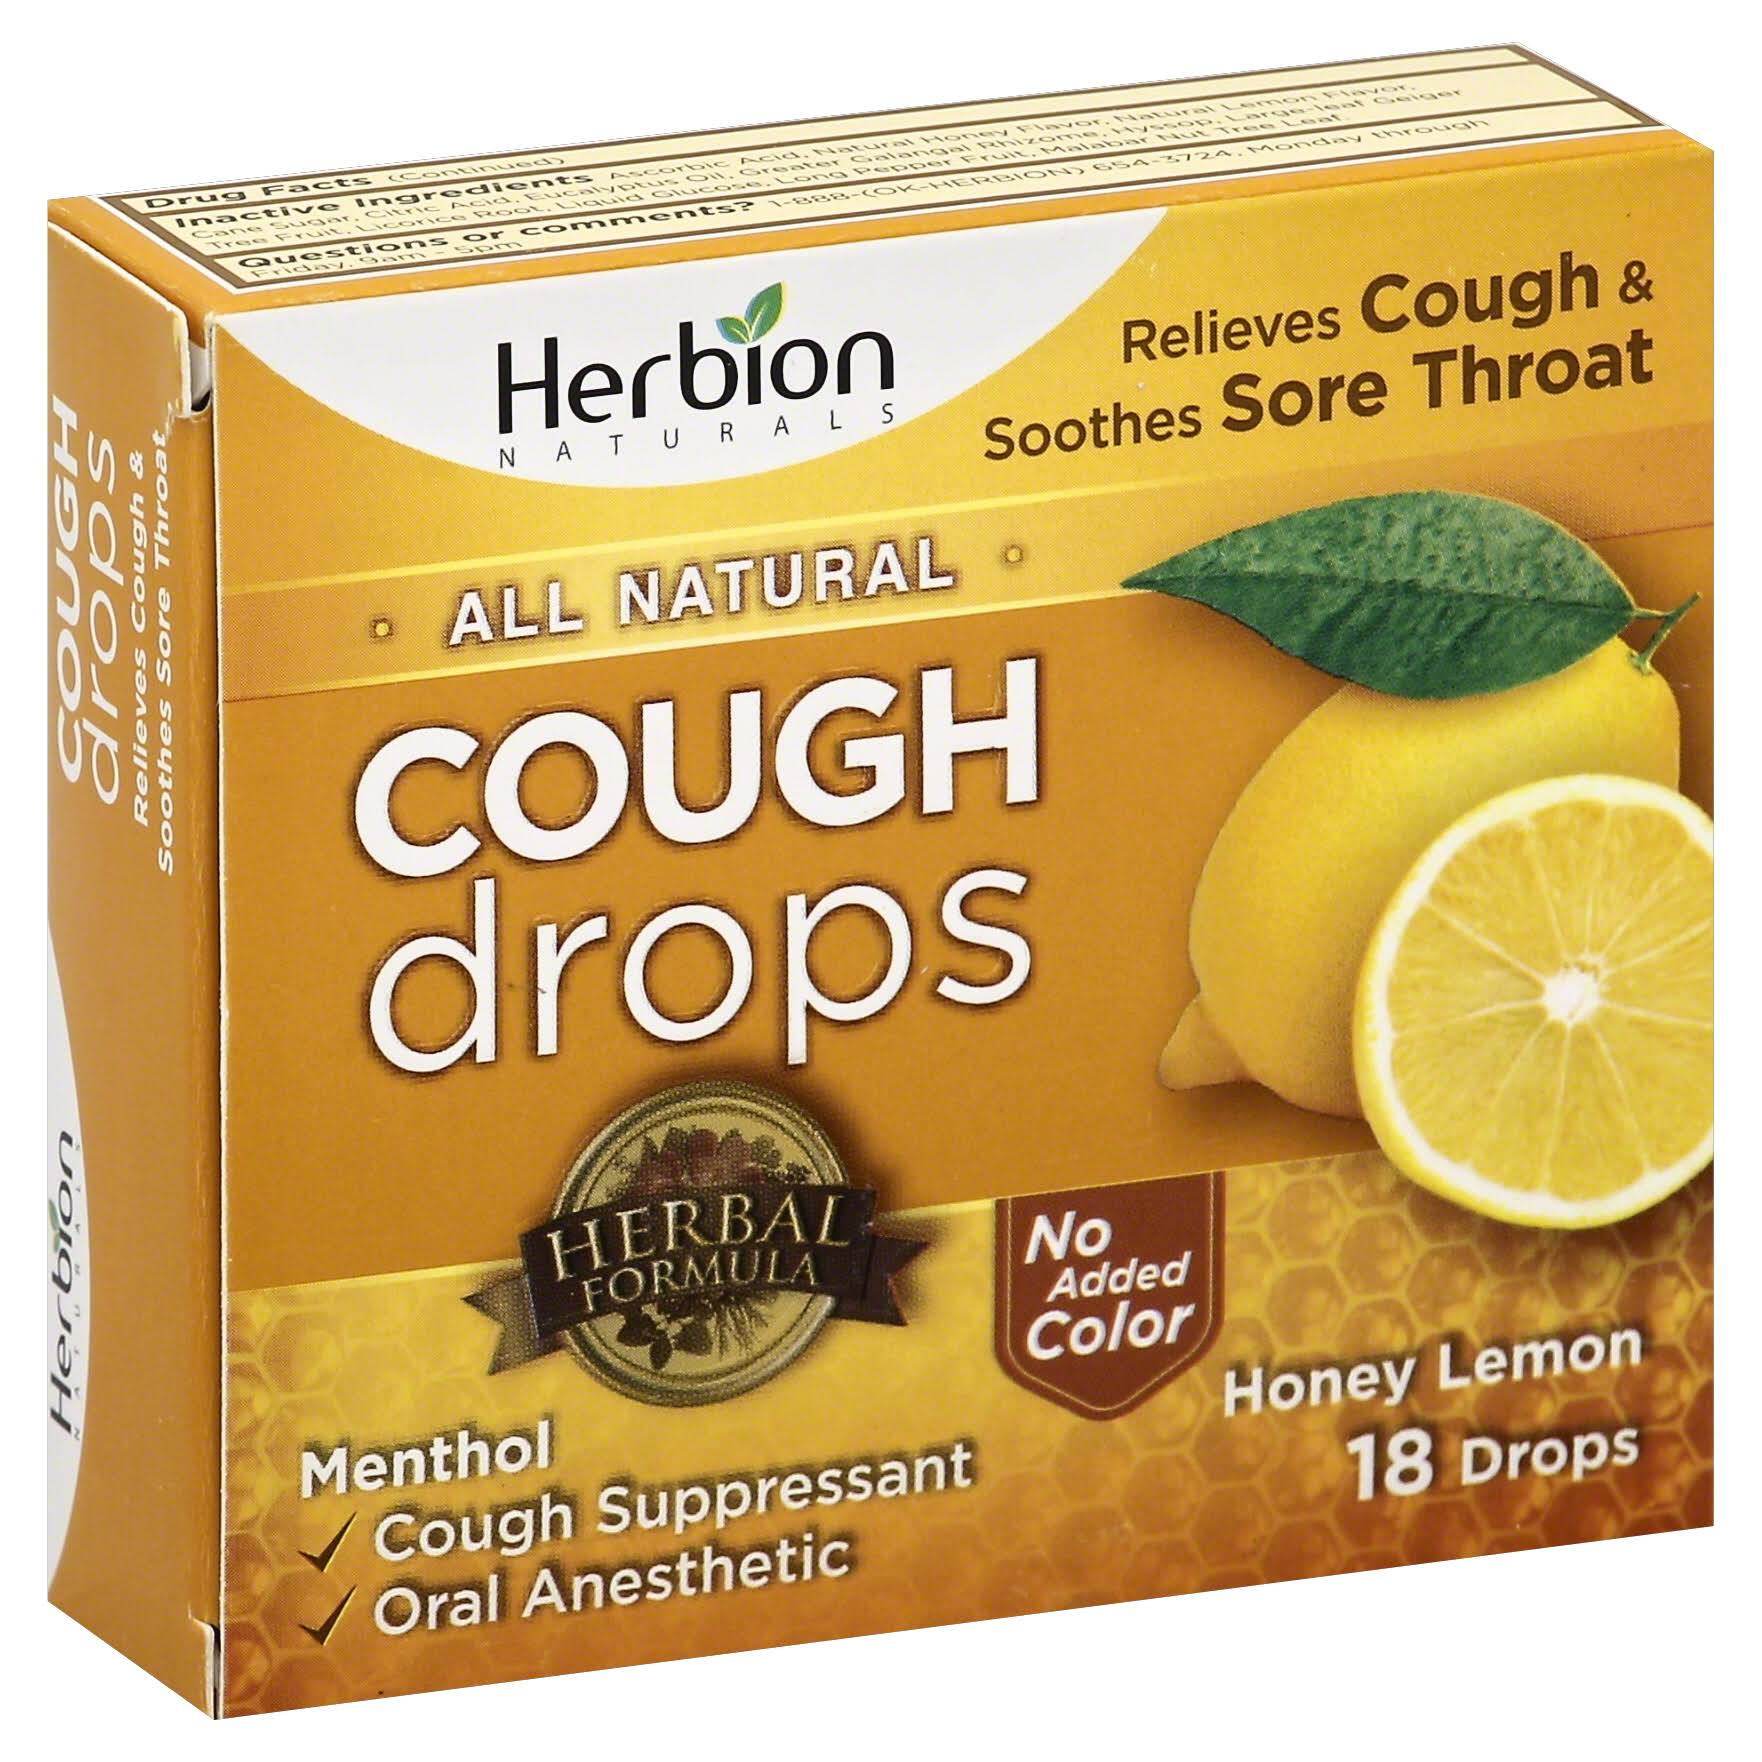 Herbion All Natural Cough Drops